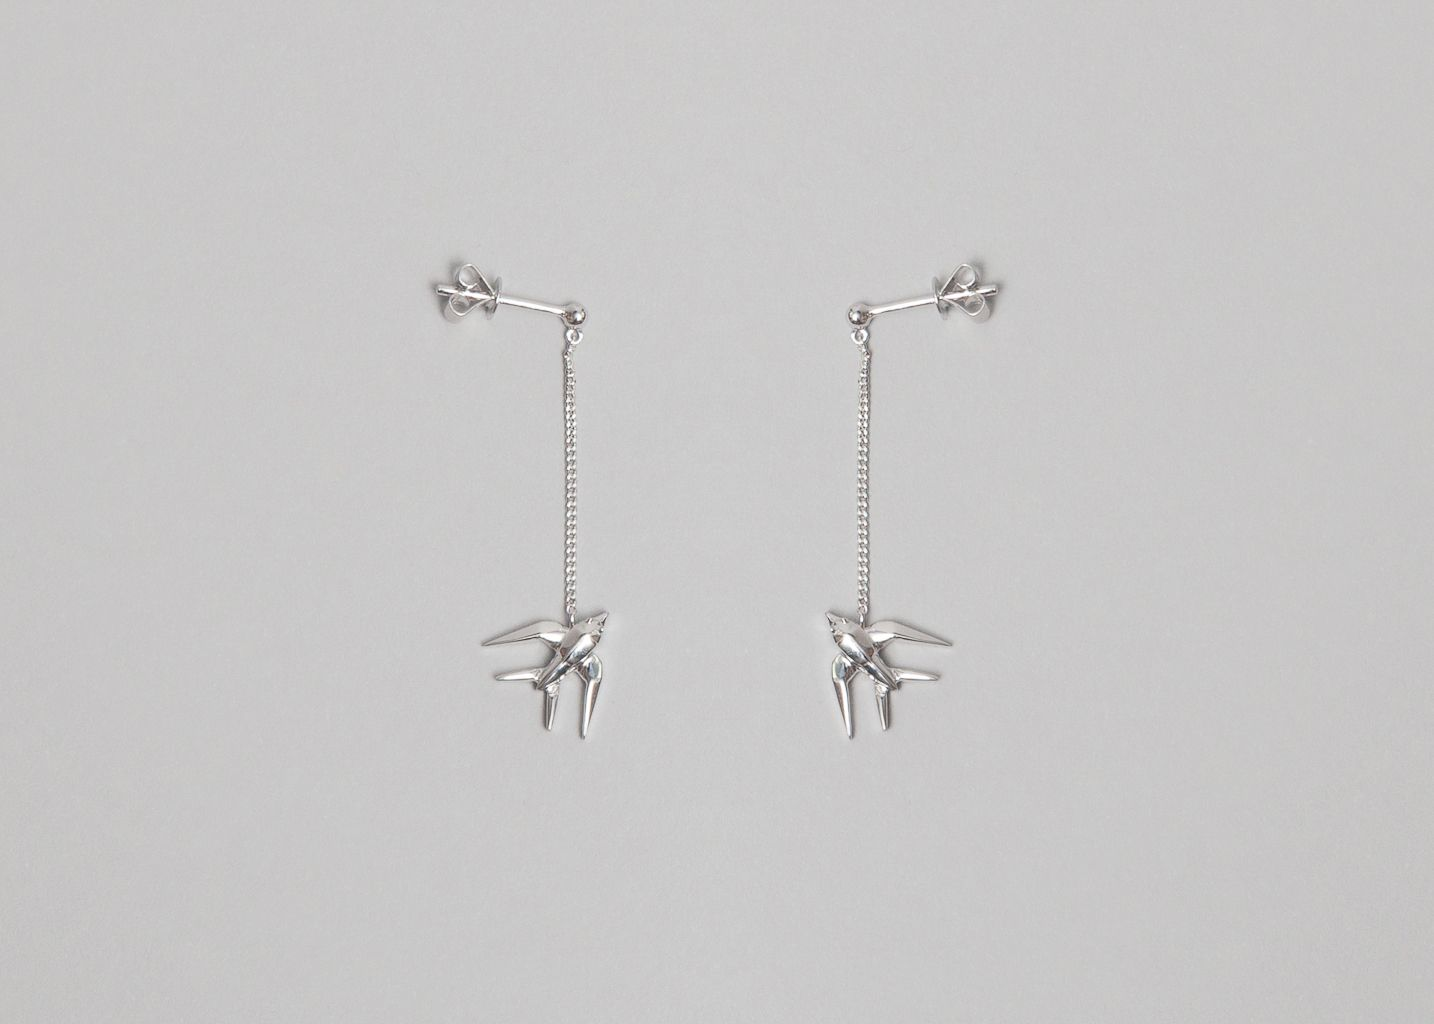 Boucles d'Oreilles Hirondelle Origami - Origami Jewellery